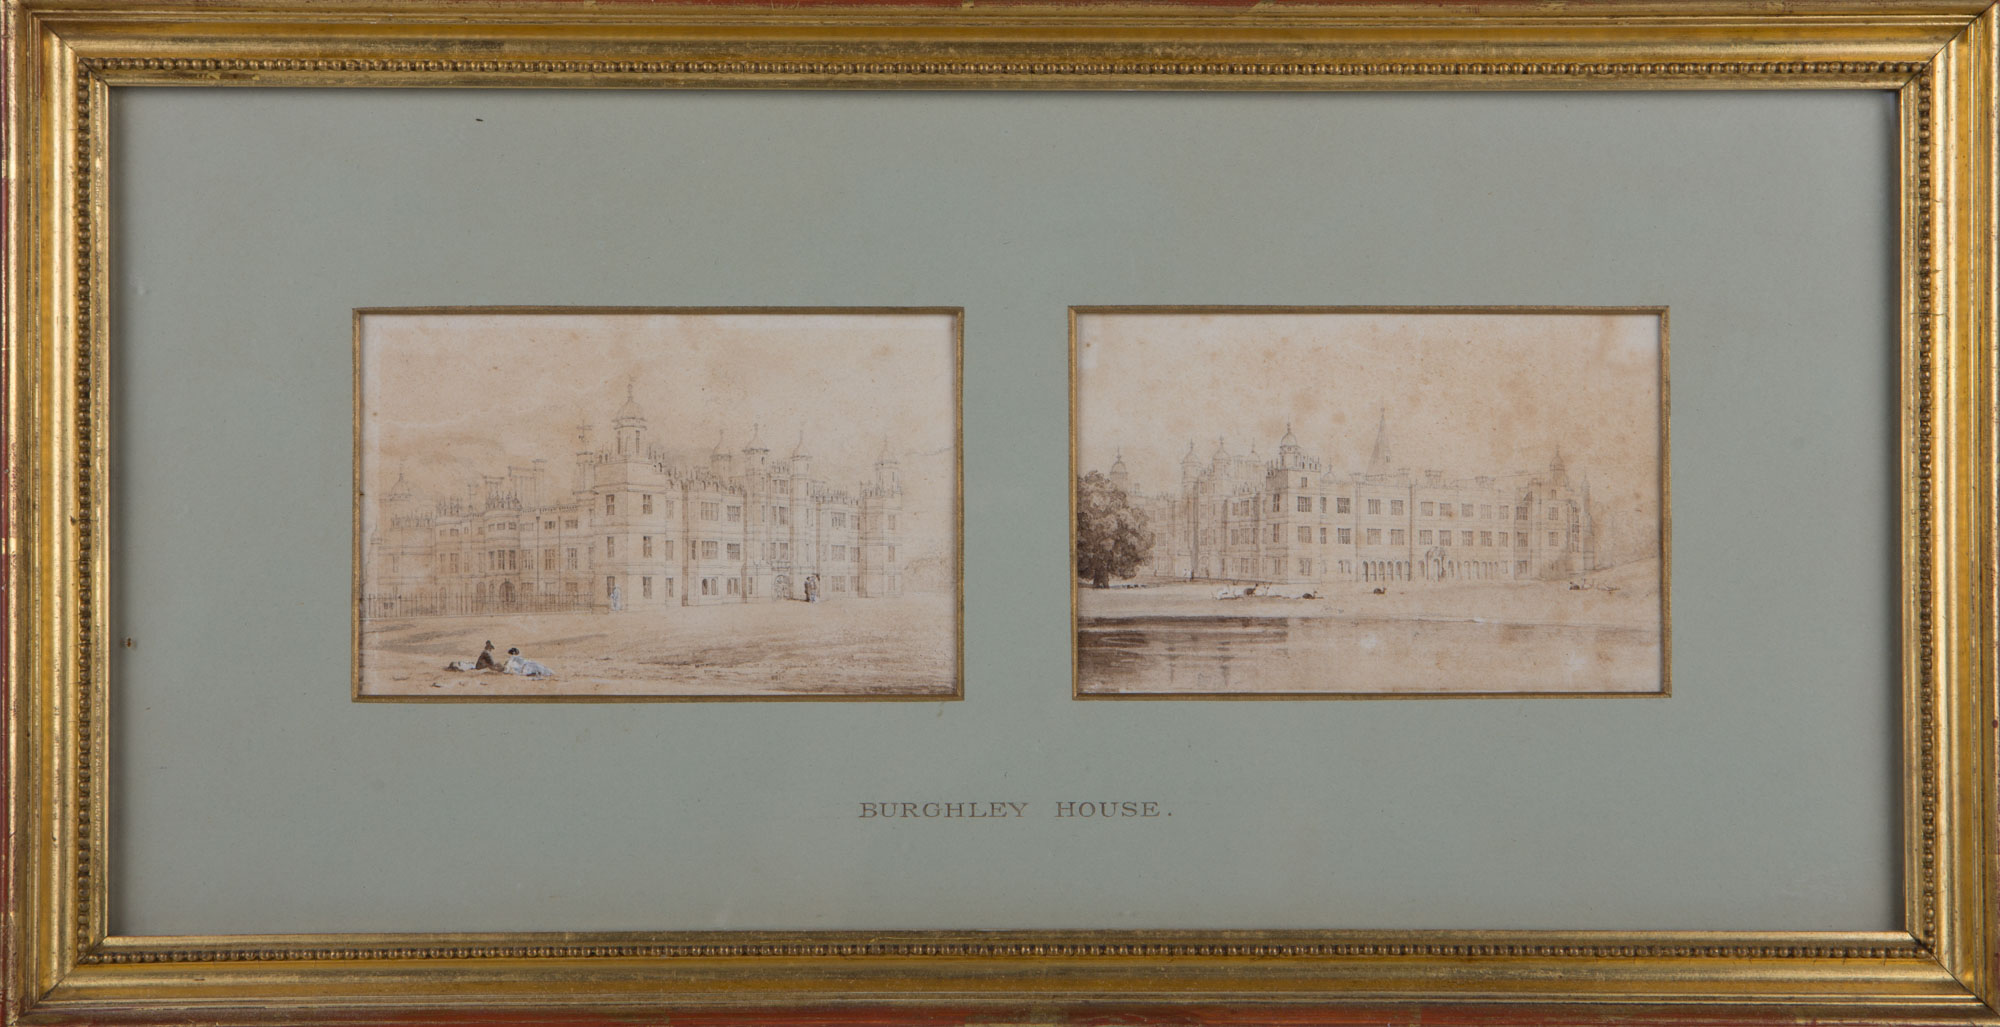 Two Views of Burghley House, by John Preston Neale (1780-1847).